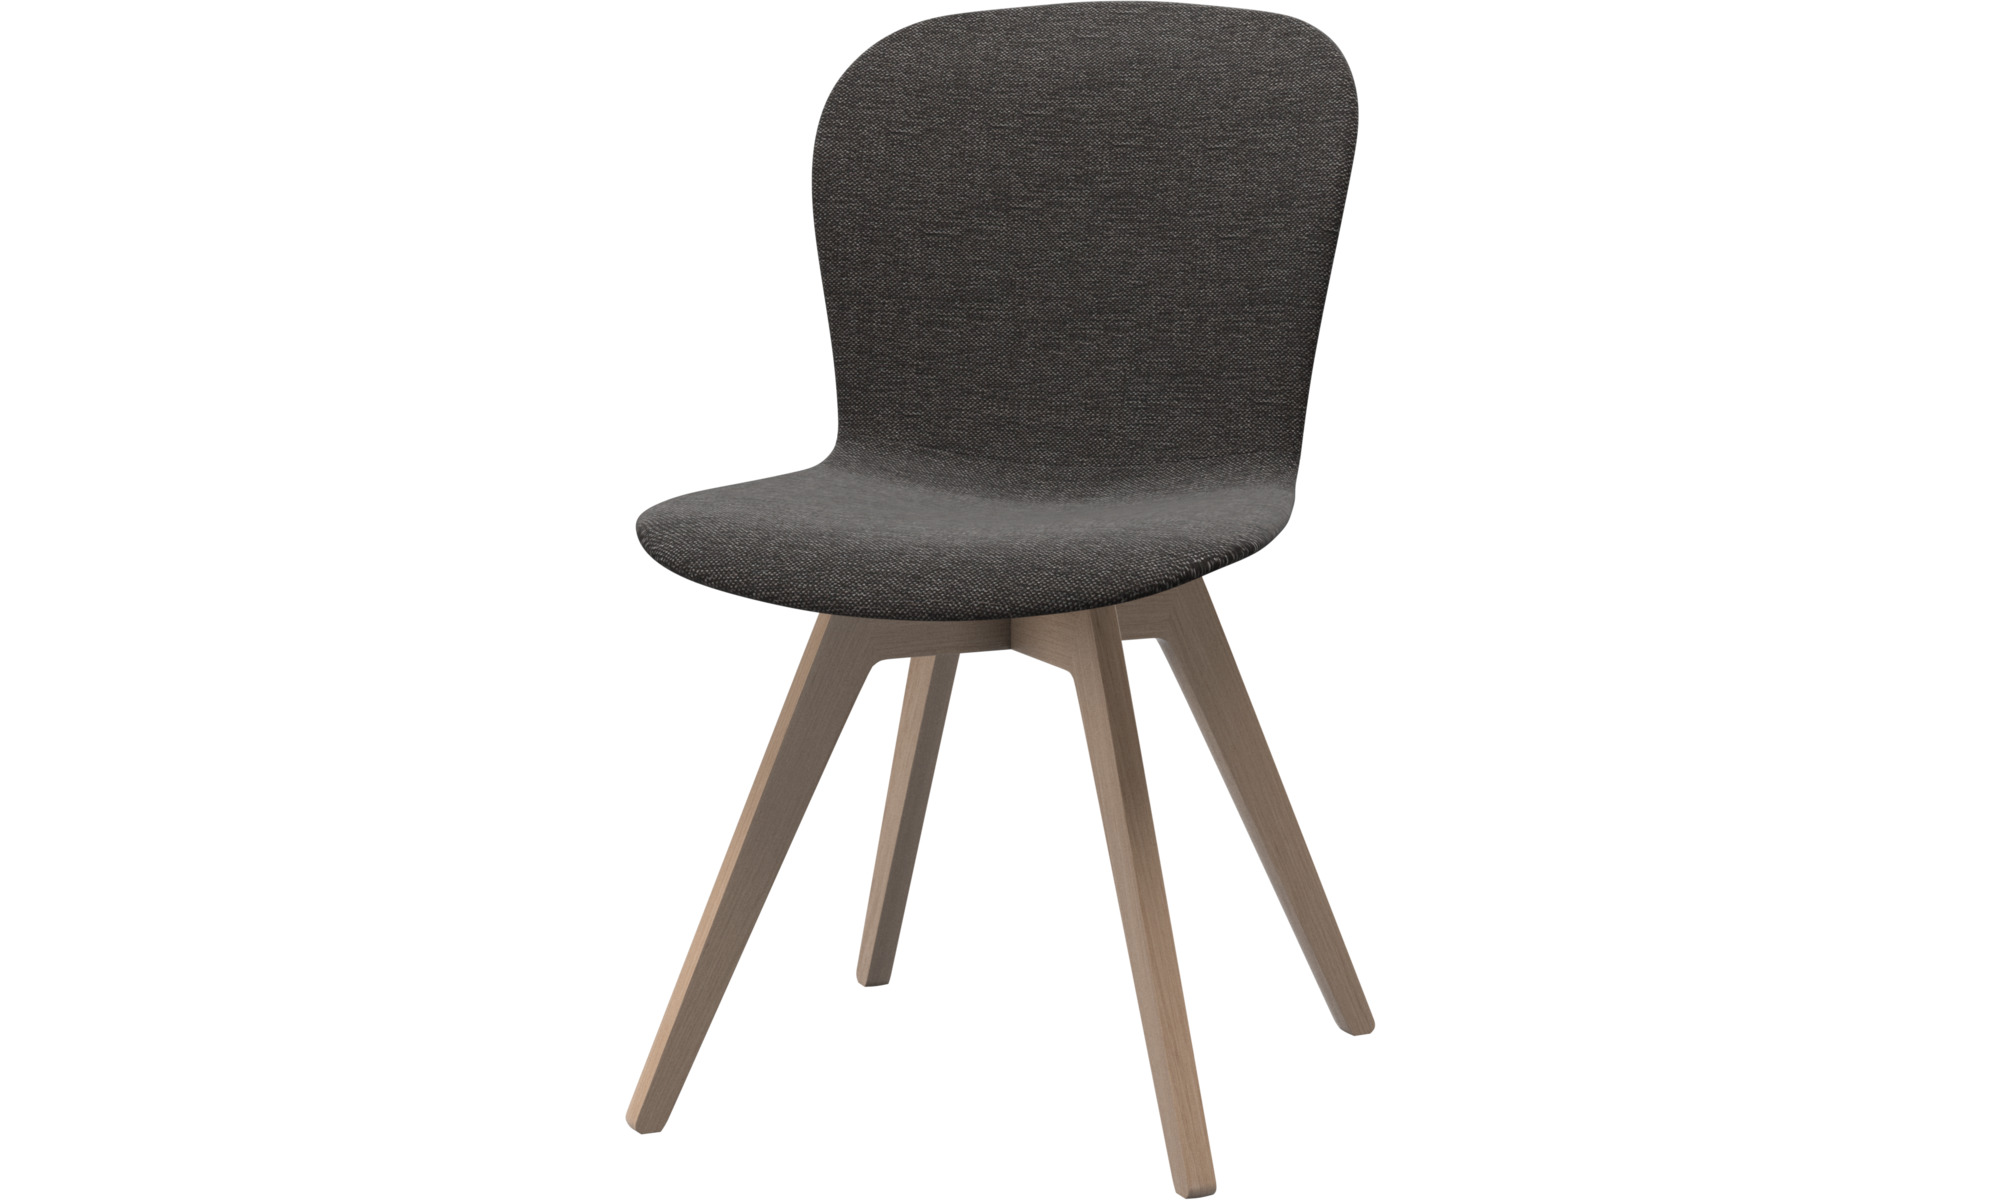 【Chair】Adelaide chair 20%off